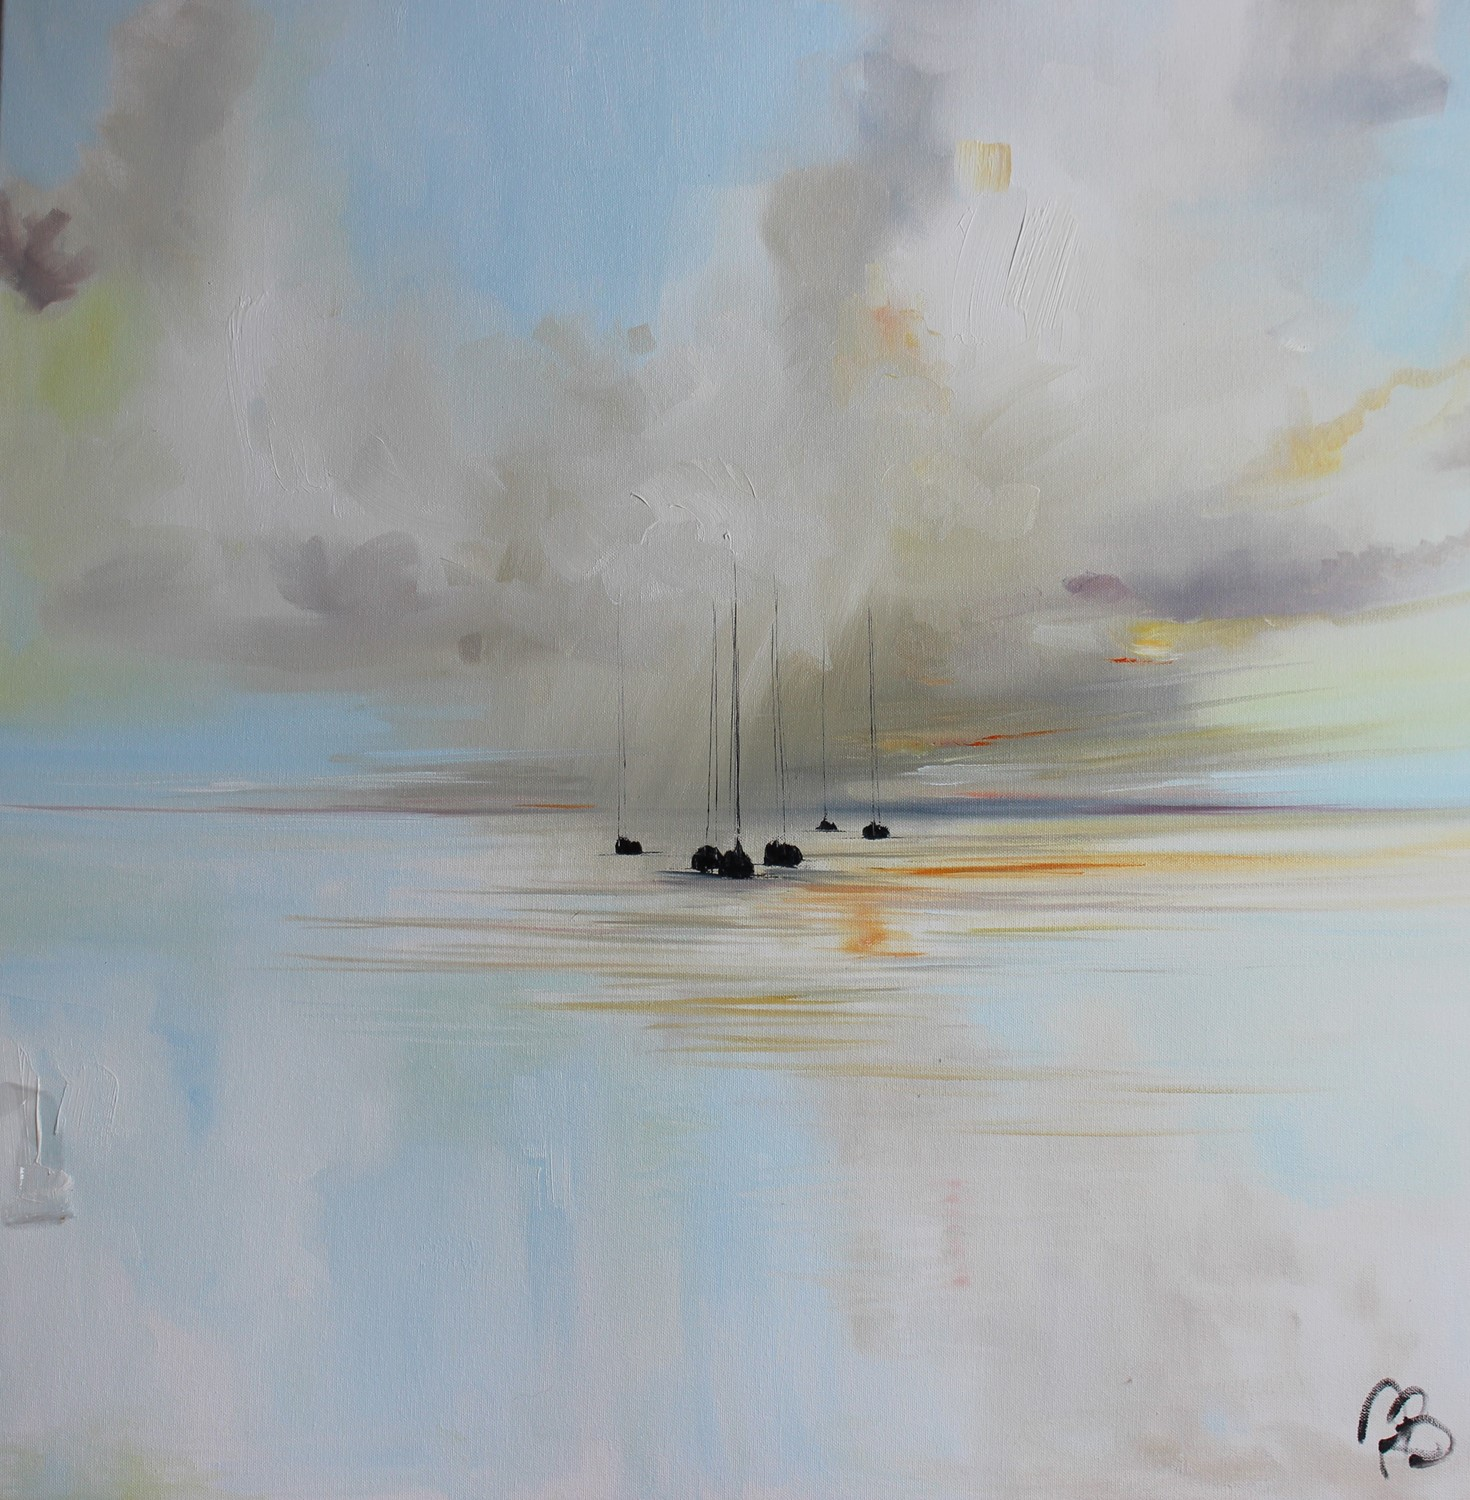 'Shifting clouds at sea' by artist Rosanne Barr